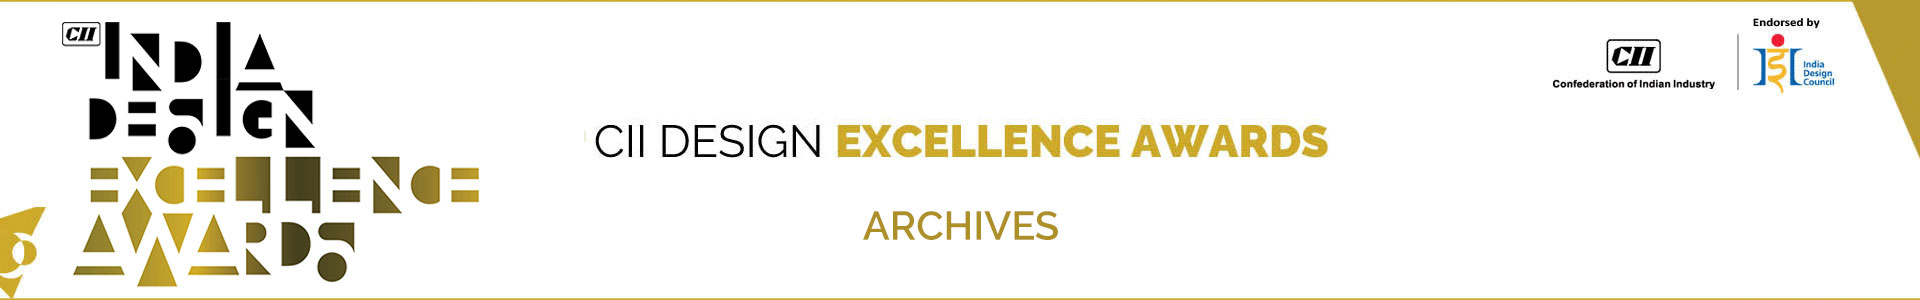 excellence-awards-archives